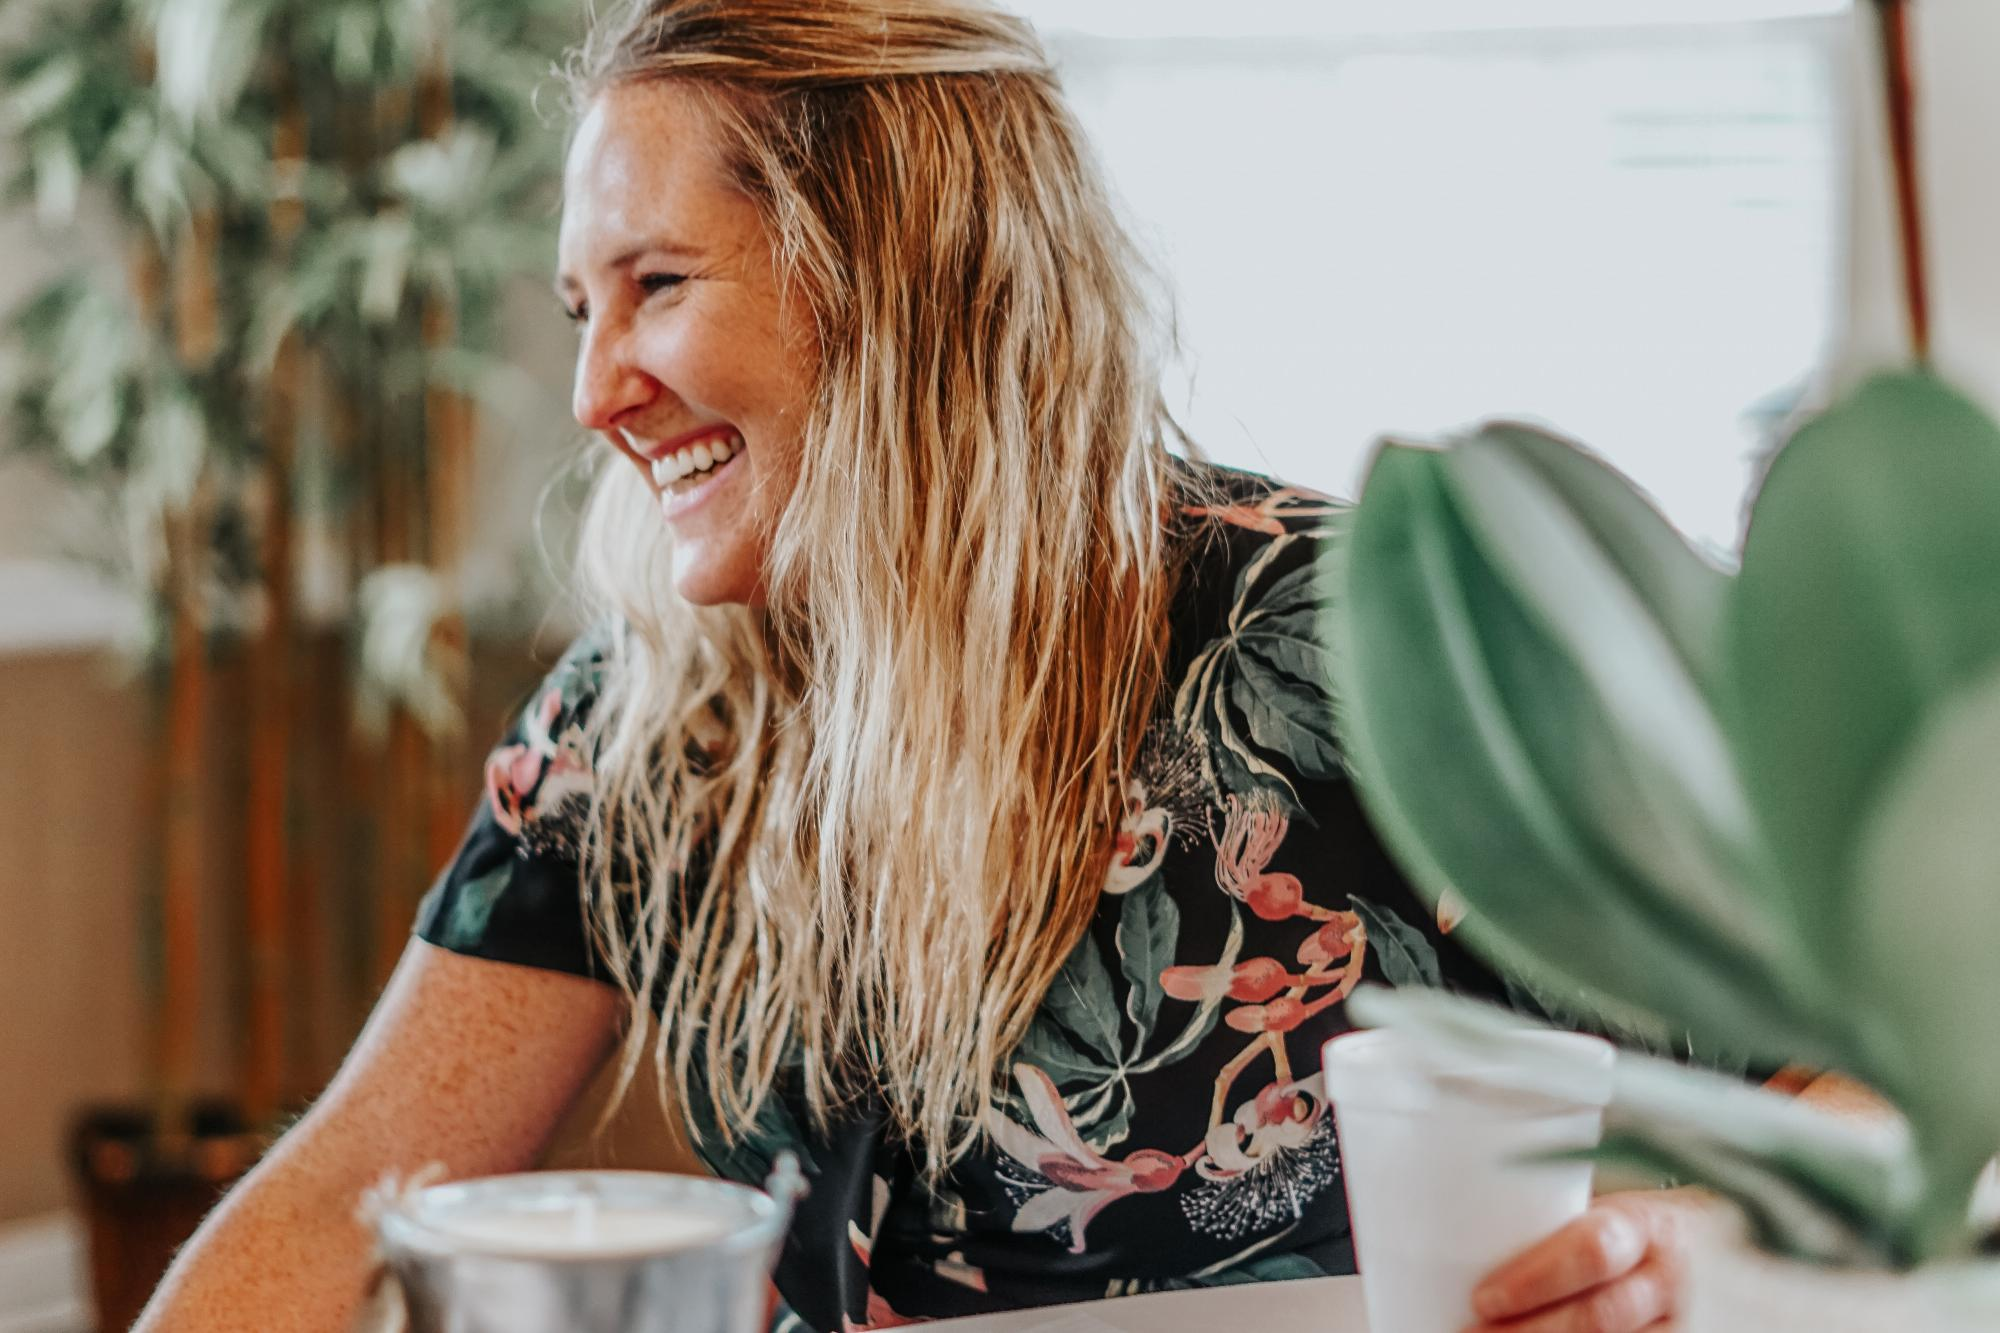 Peverel Court Care - A fresh look at attracting the best carers: How we improved our recruitment process - Photo by Jessica To'oto'o on Unsplash